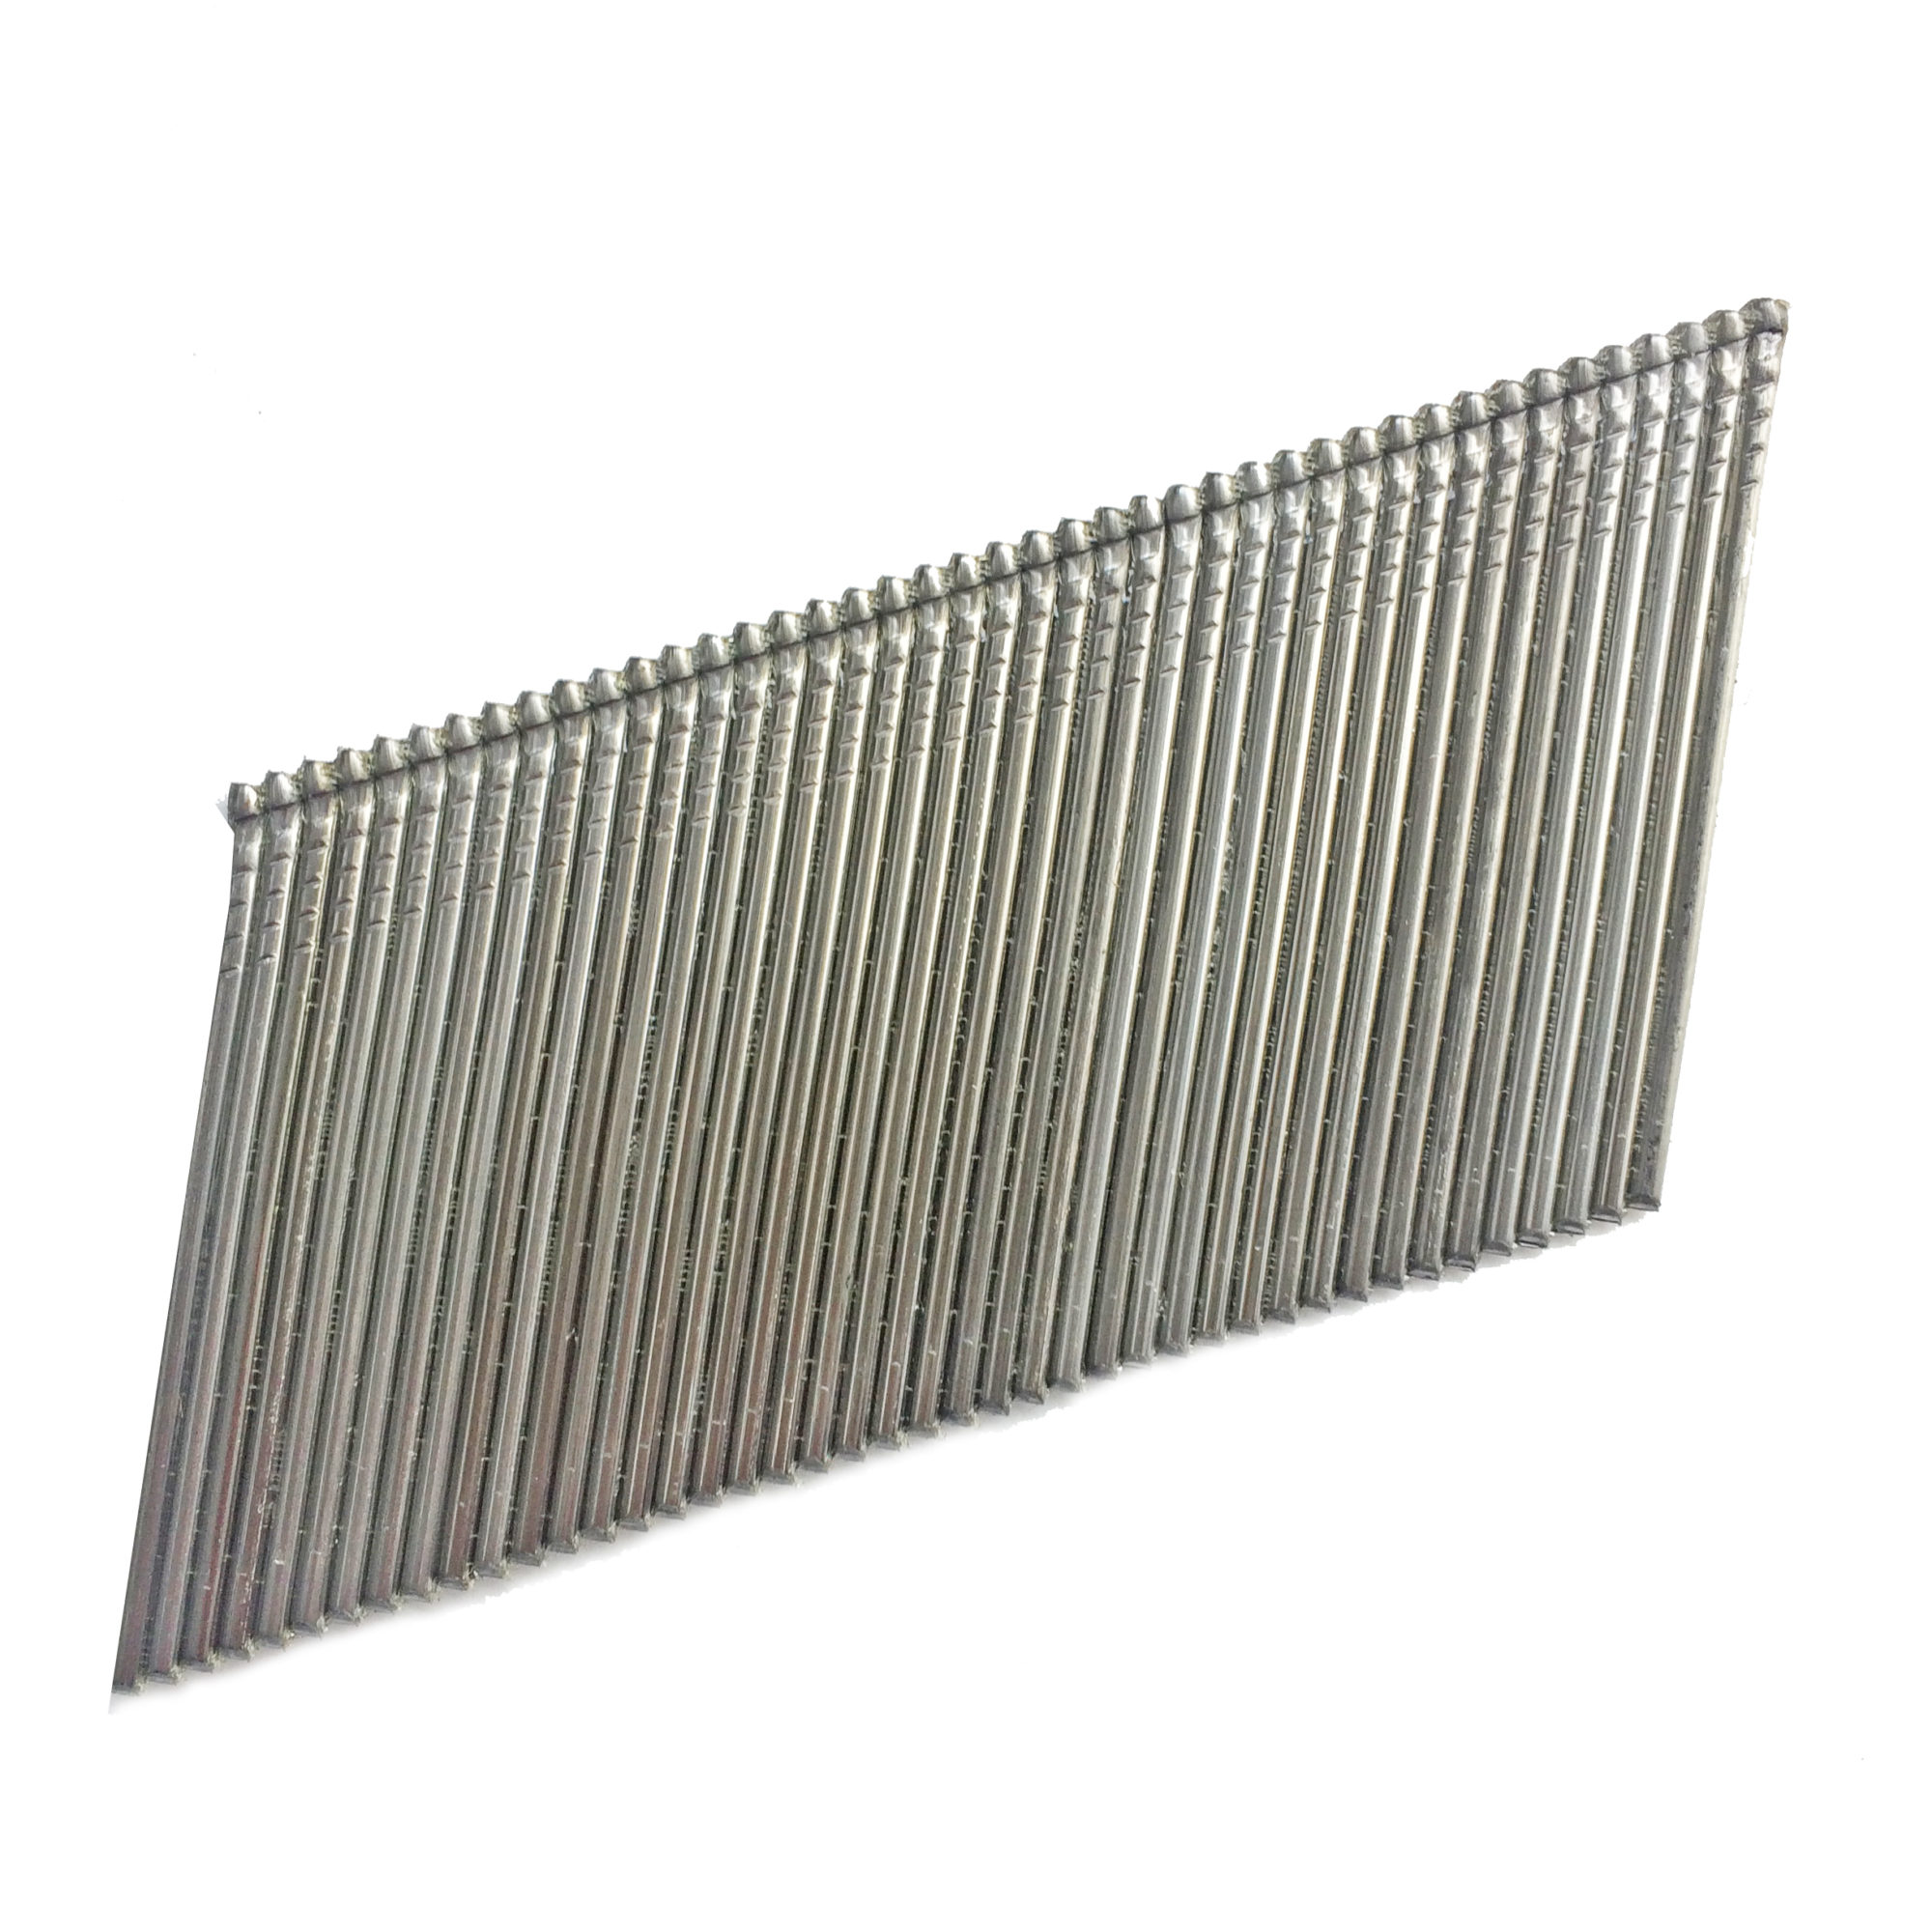 ANGLE FINISH STAINLESS STEEL (FN)